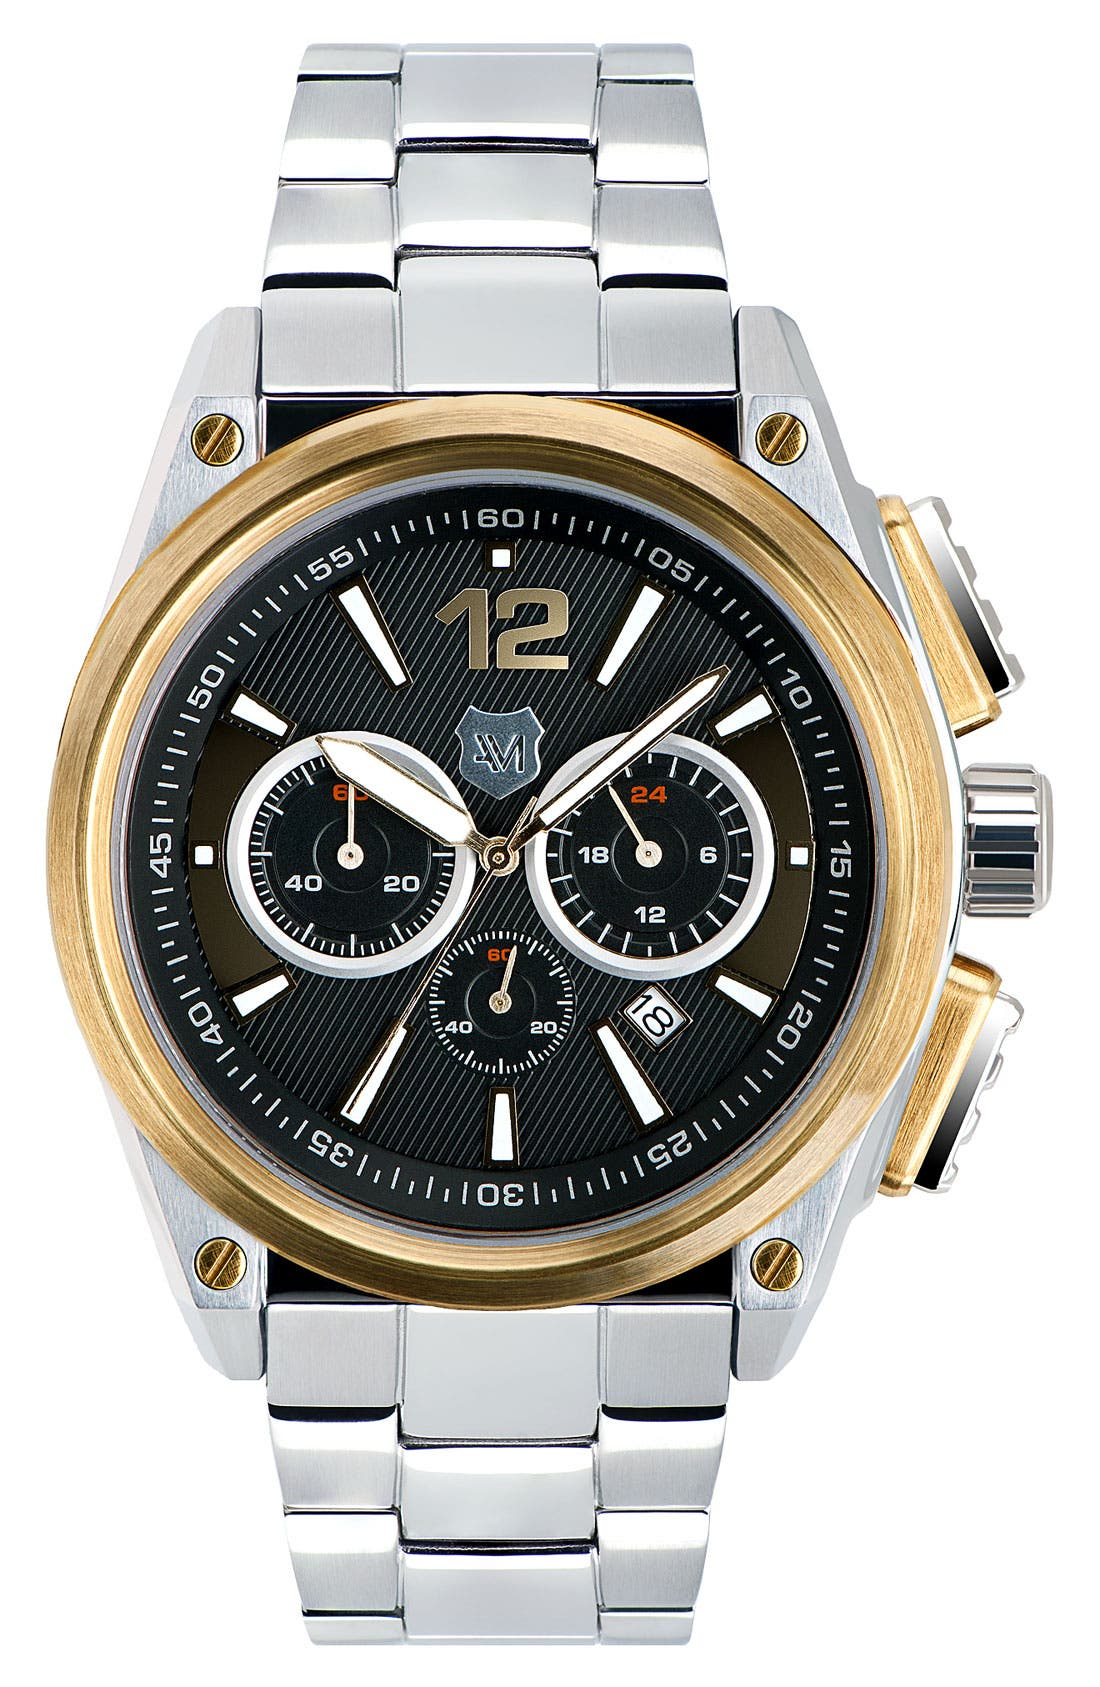 Main Image - Andrew Marc Watches 'G-III Racer' Chronograph Bracelet Watch, 46mm